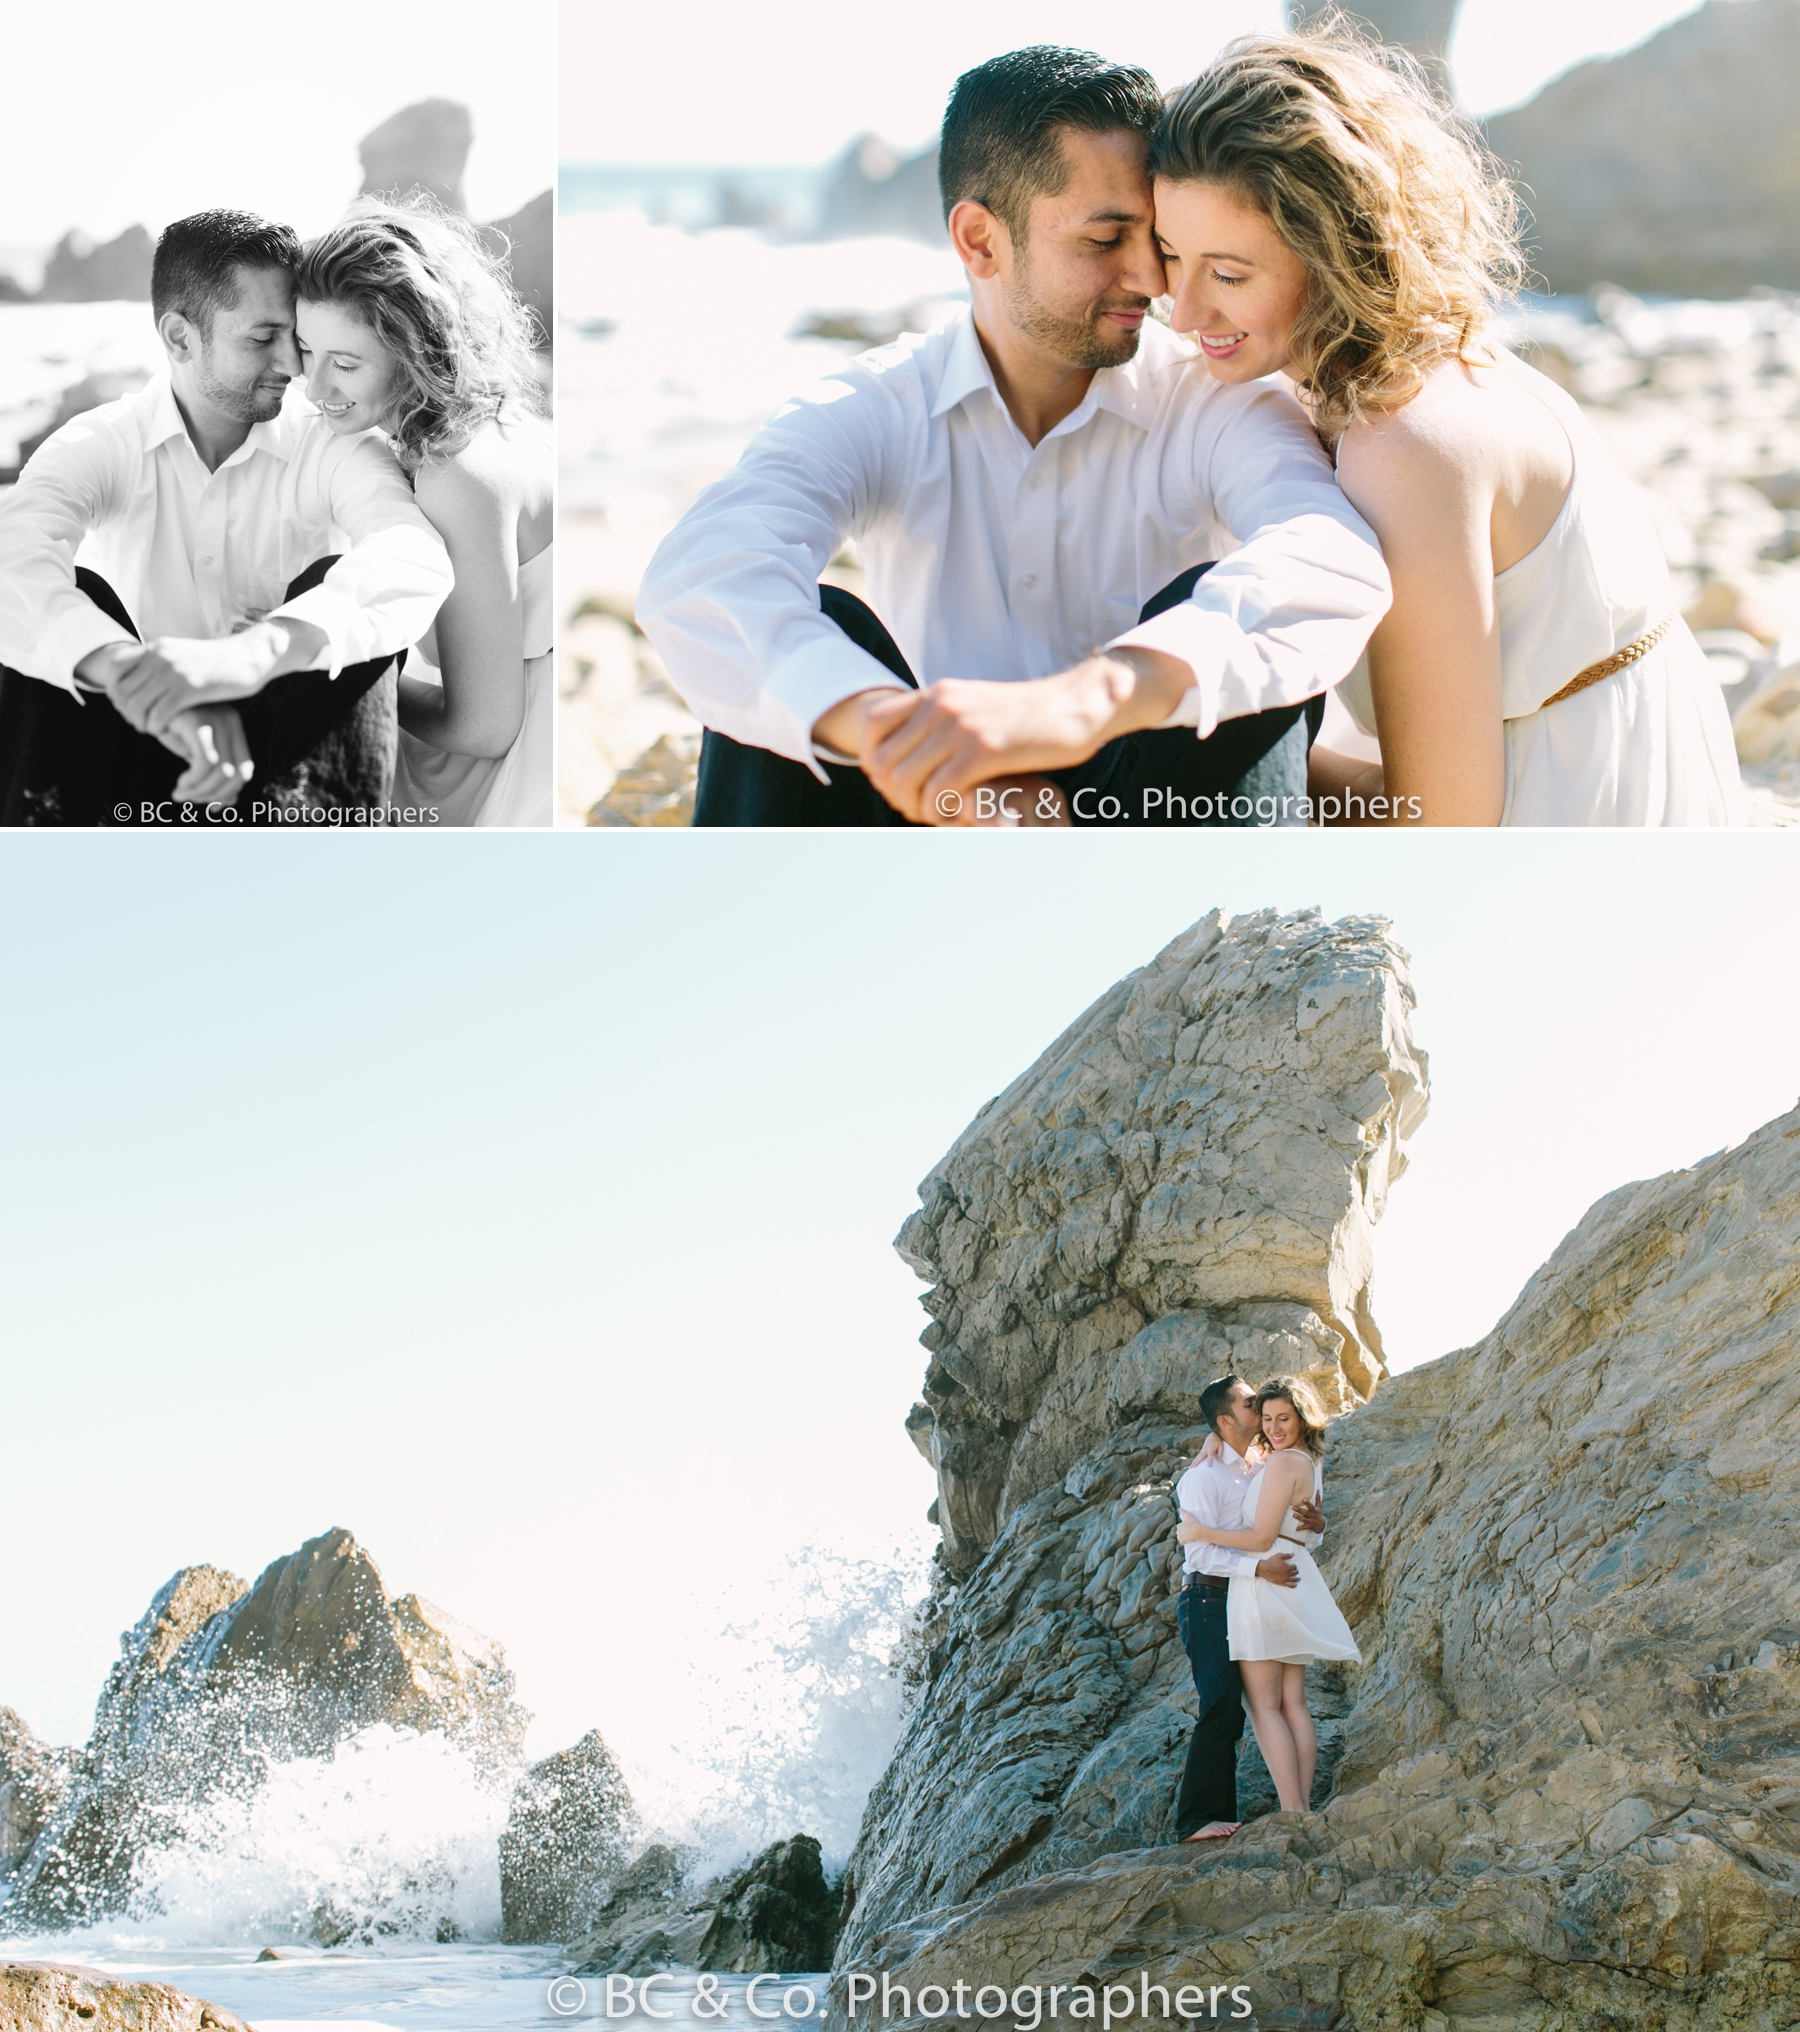 Orange-County-Wedding-Photography-Brianna-Caster-And-Co-Photographers 6